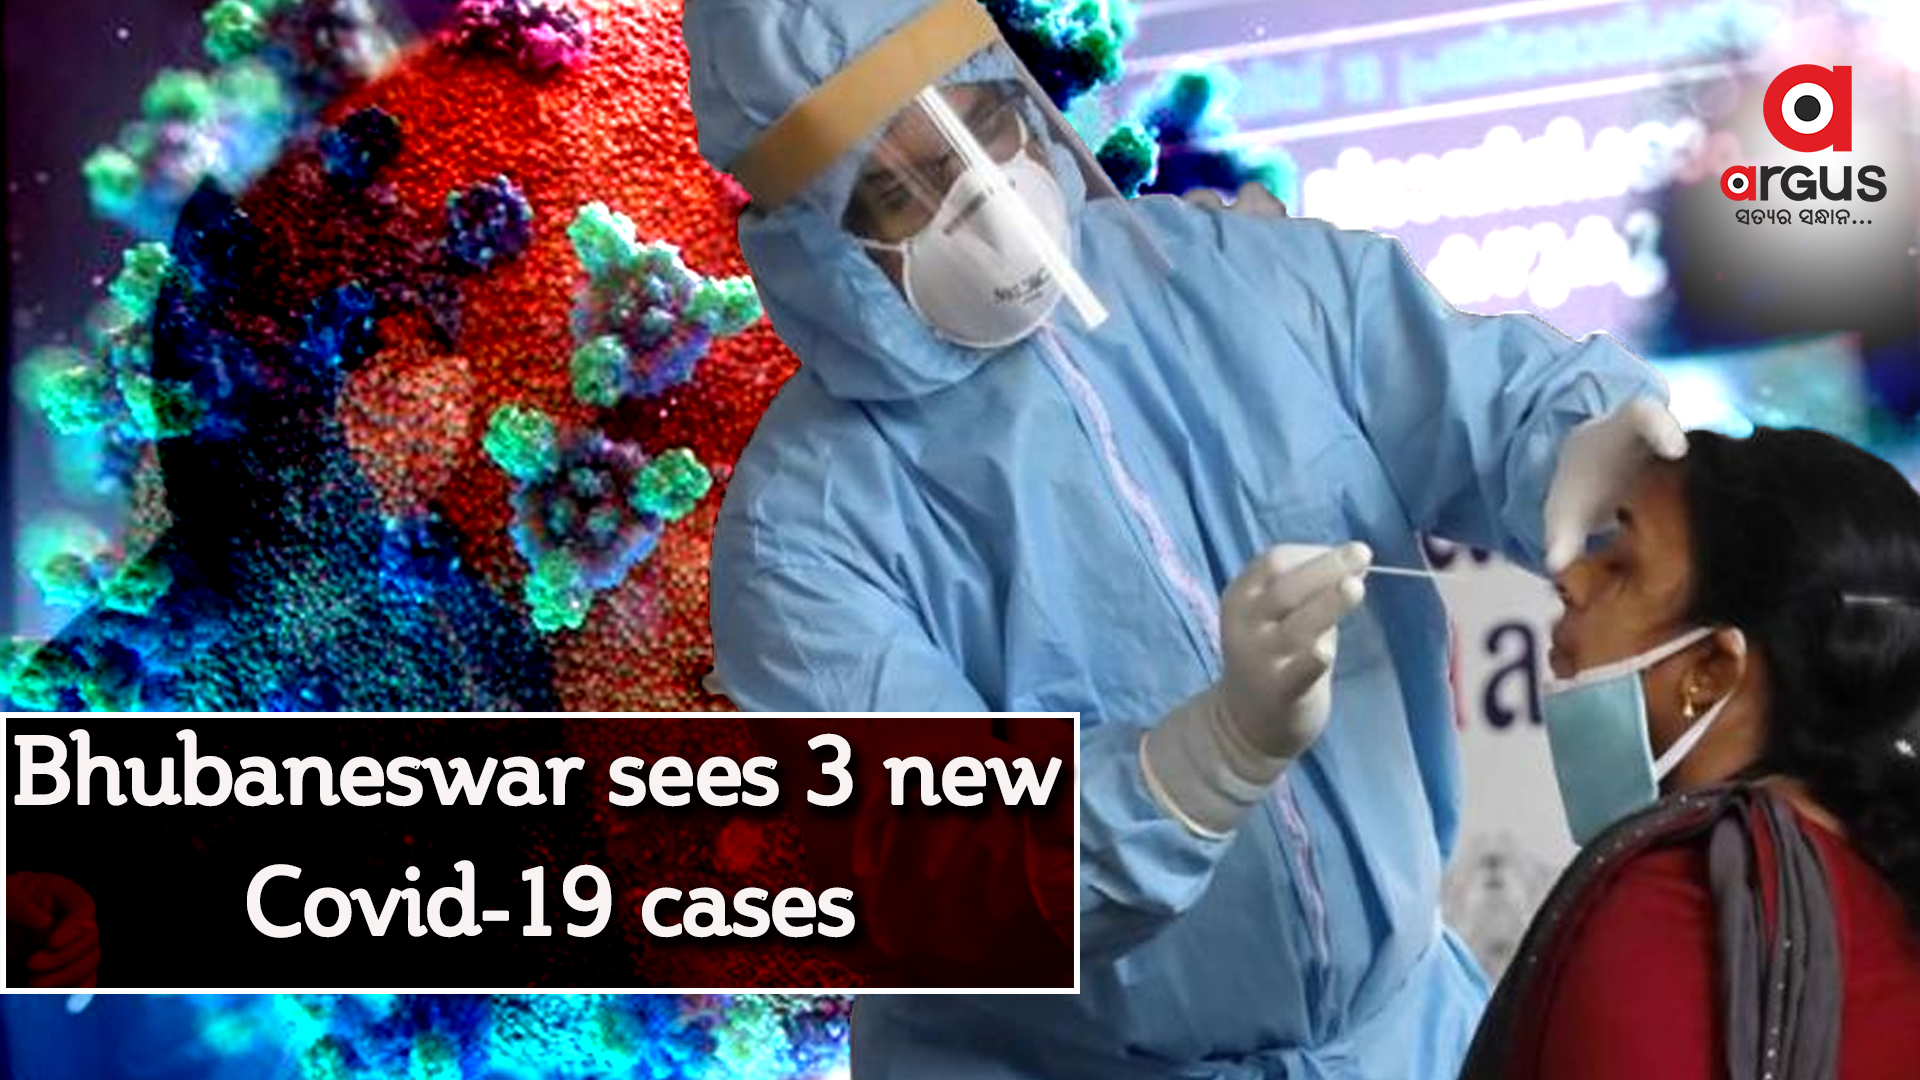 Bhubaneswar reports 3 new Covid-19 cases, 6 recoveries